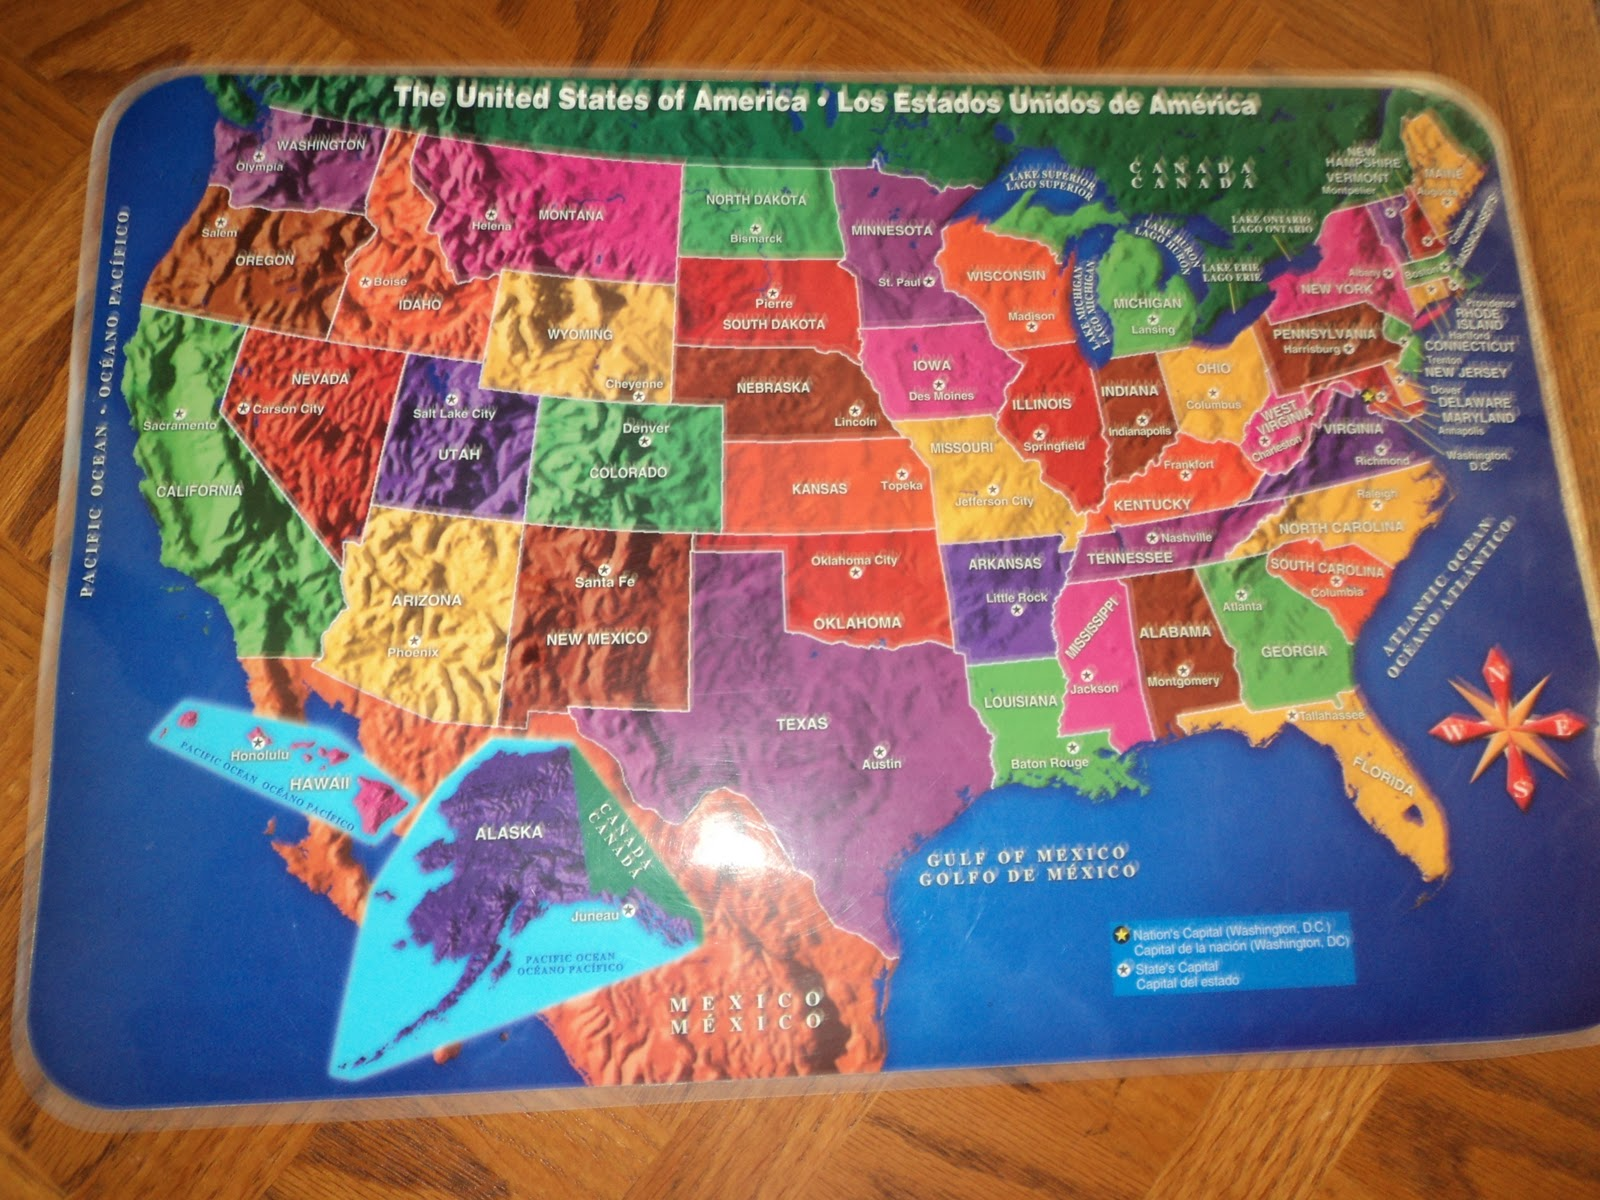 Addition To This Puzzle I Purchased Very Affordable Table Mat With All Us States Whenever We Have A Meal 3 X Day I Put It On The Table